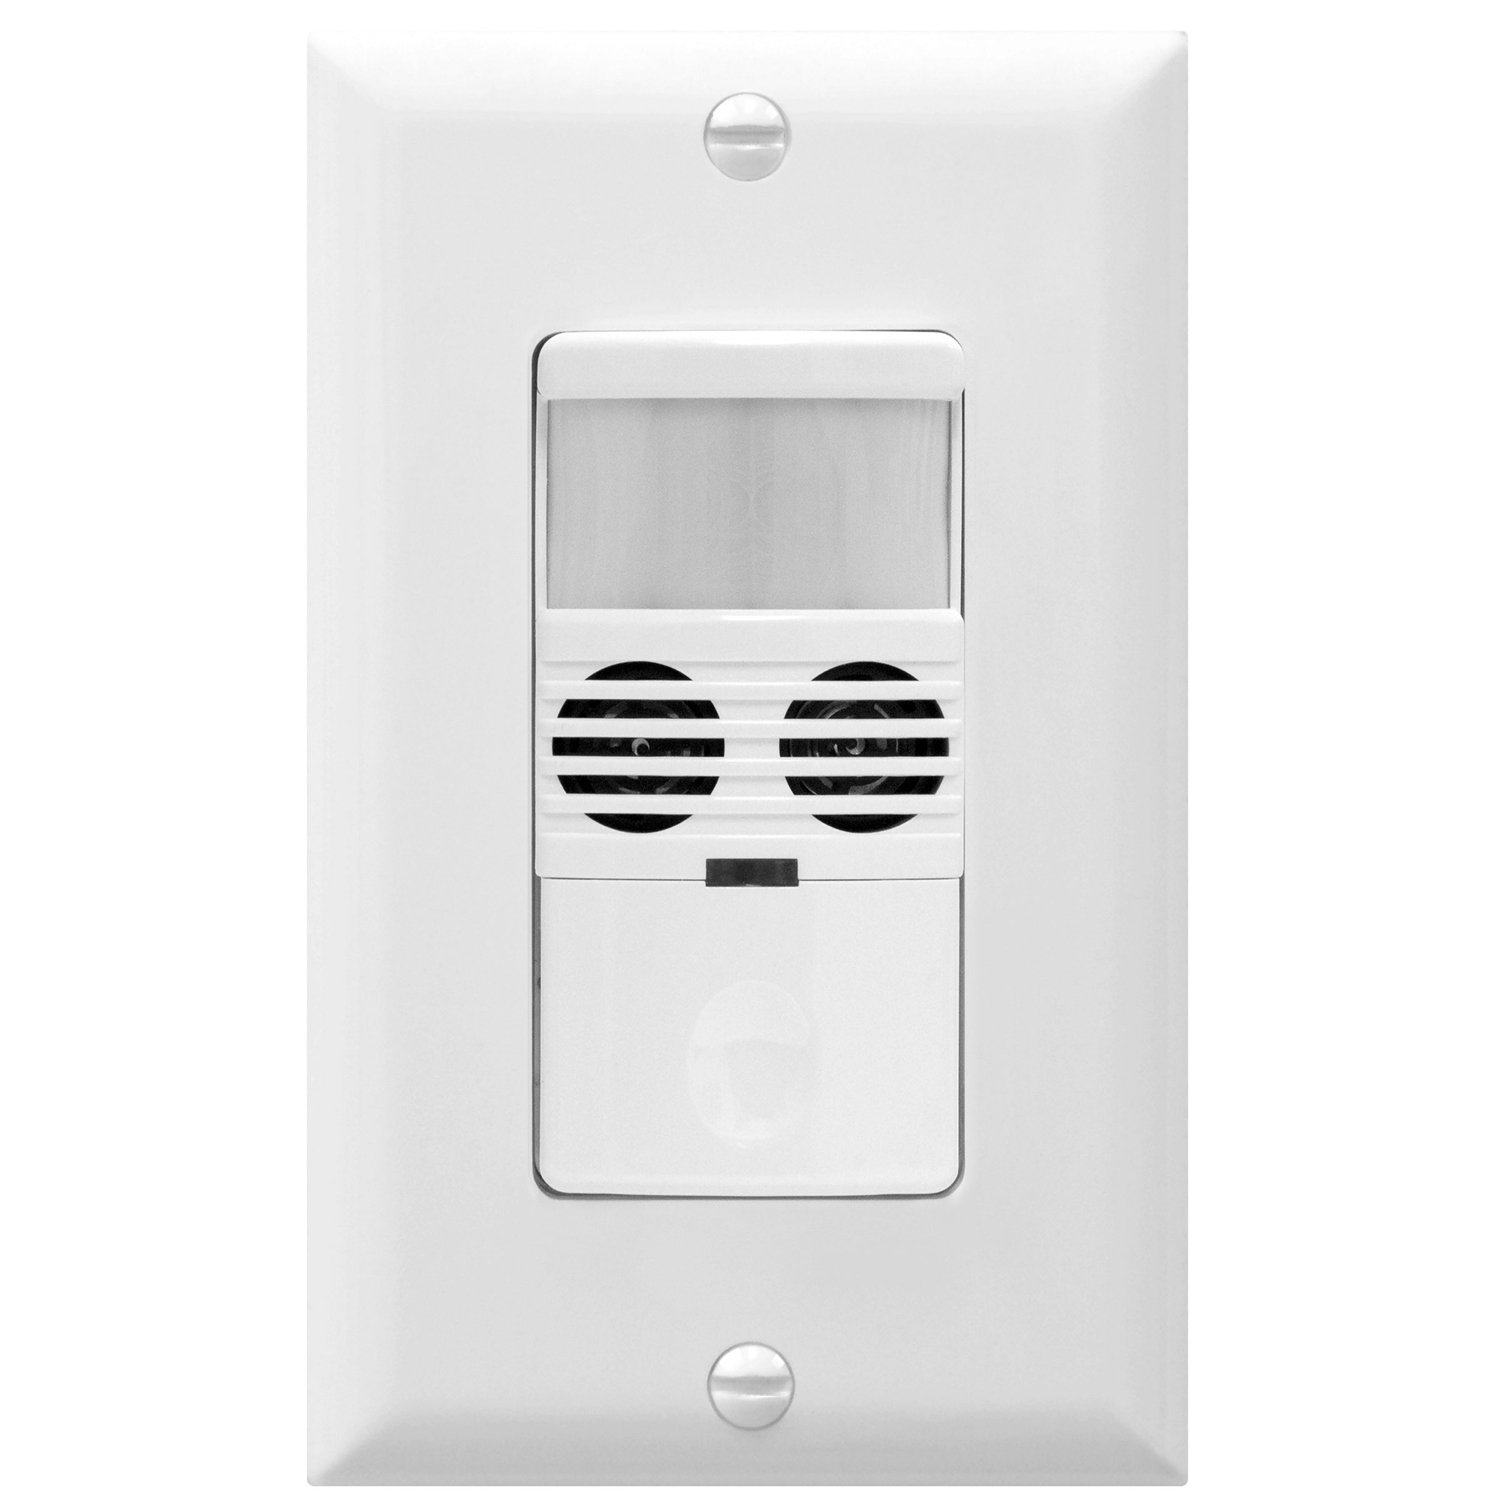 Best Rated In Motion Activated Wall Switches Helpful Customer Wiring A Pir Security Light Diagram Enerlites Mwos W Sensor Switch Ultrasonic And Dual Technology Occupancy